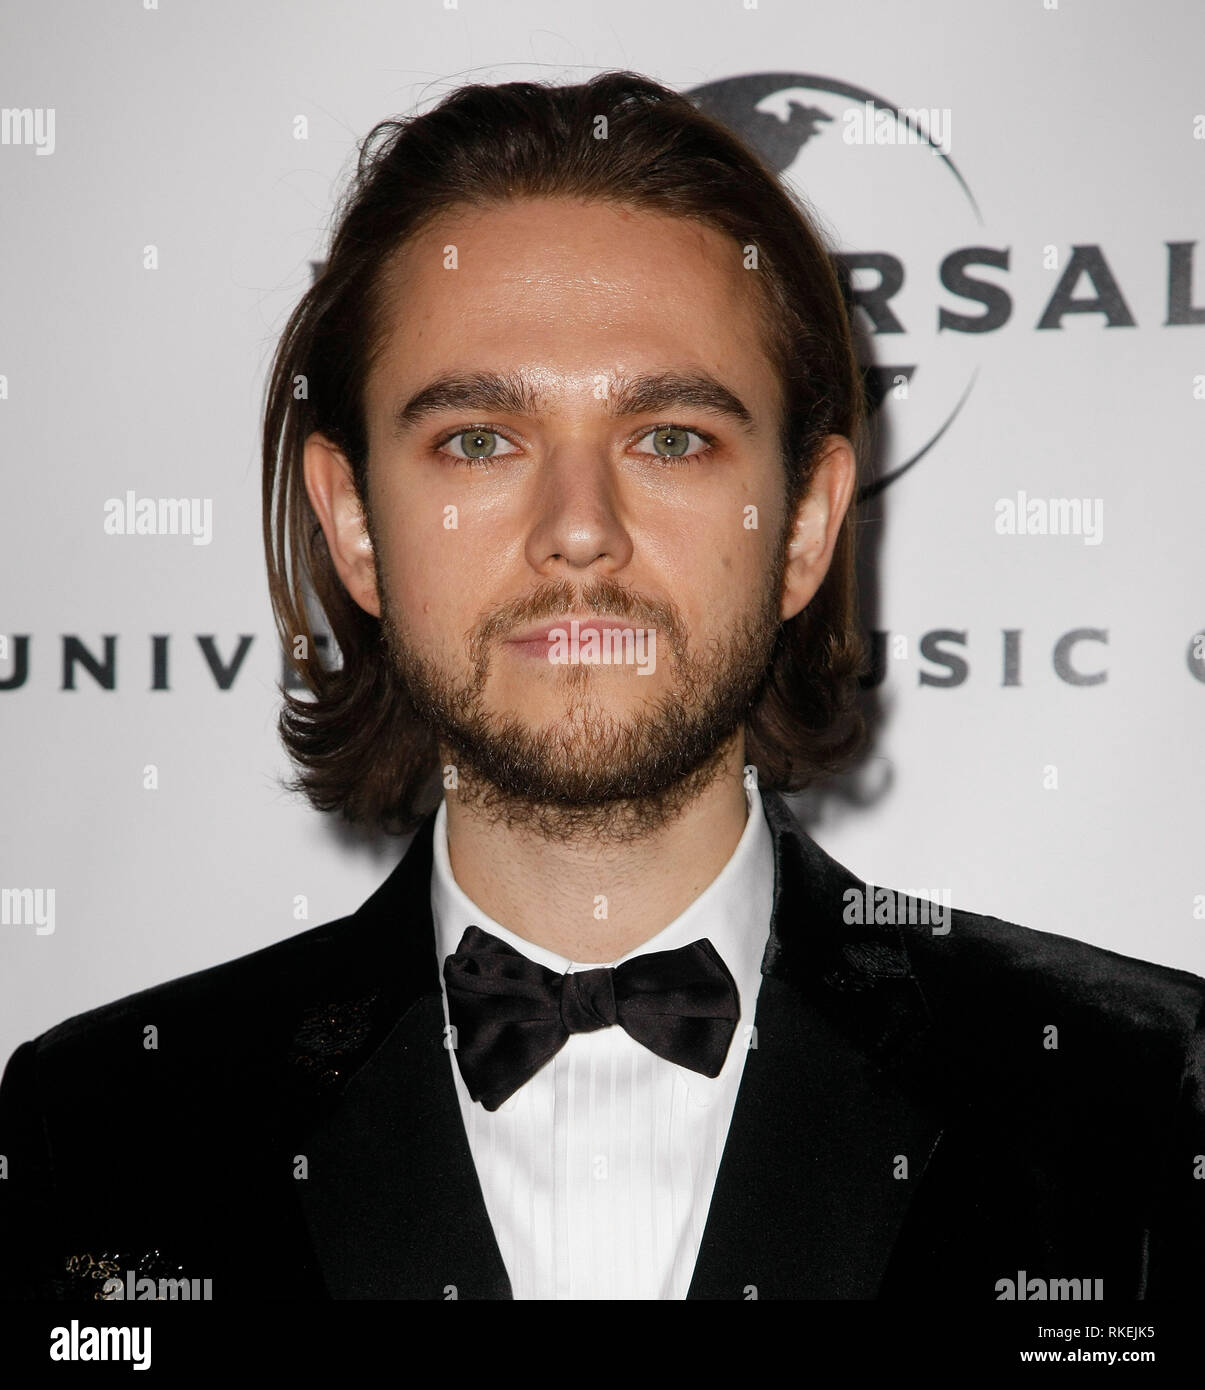 Los Angeles, California, USA. 10th Feb, 2019. ZEDD attends Universal Music Group's 2019 After Party at The ROW DTLA on February 9, 2019 in Los Angeles, California. Photo: CraSH/imageSPACE Credit: MediaPunch Inc/Alamy Live News Stock Photo